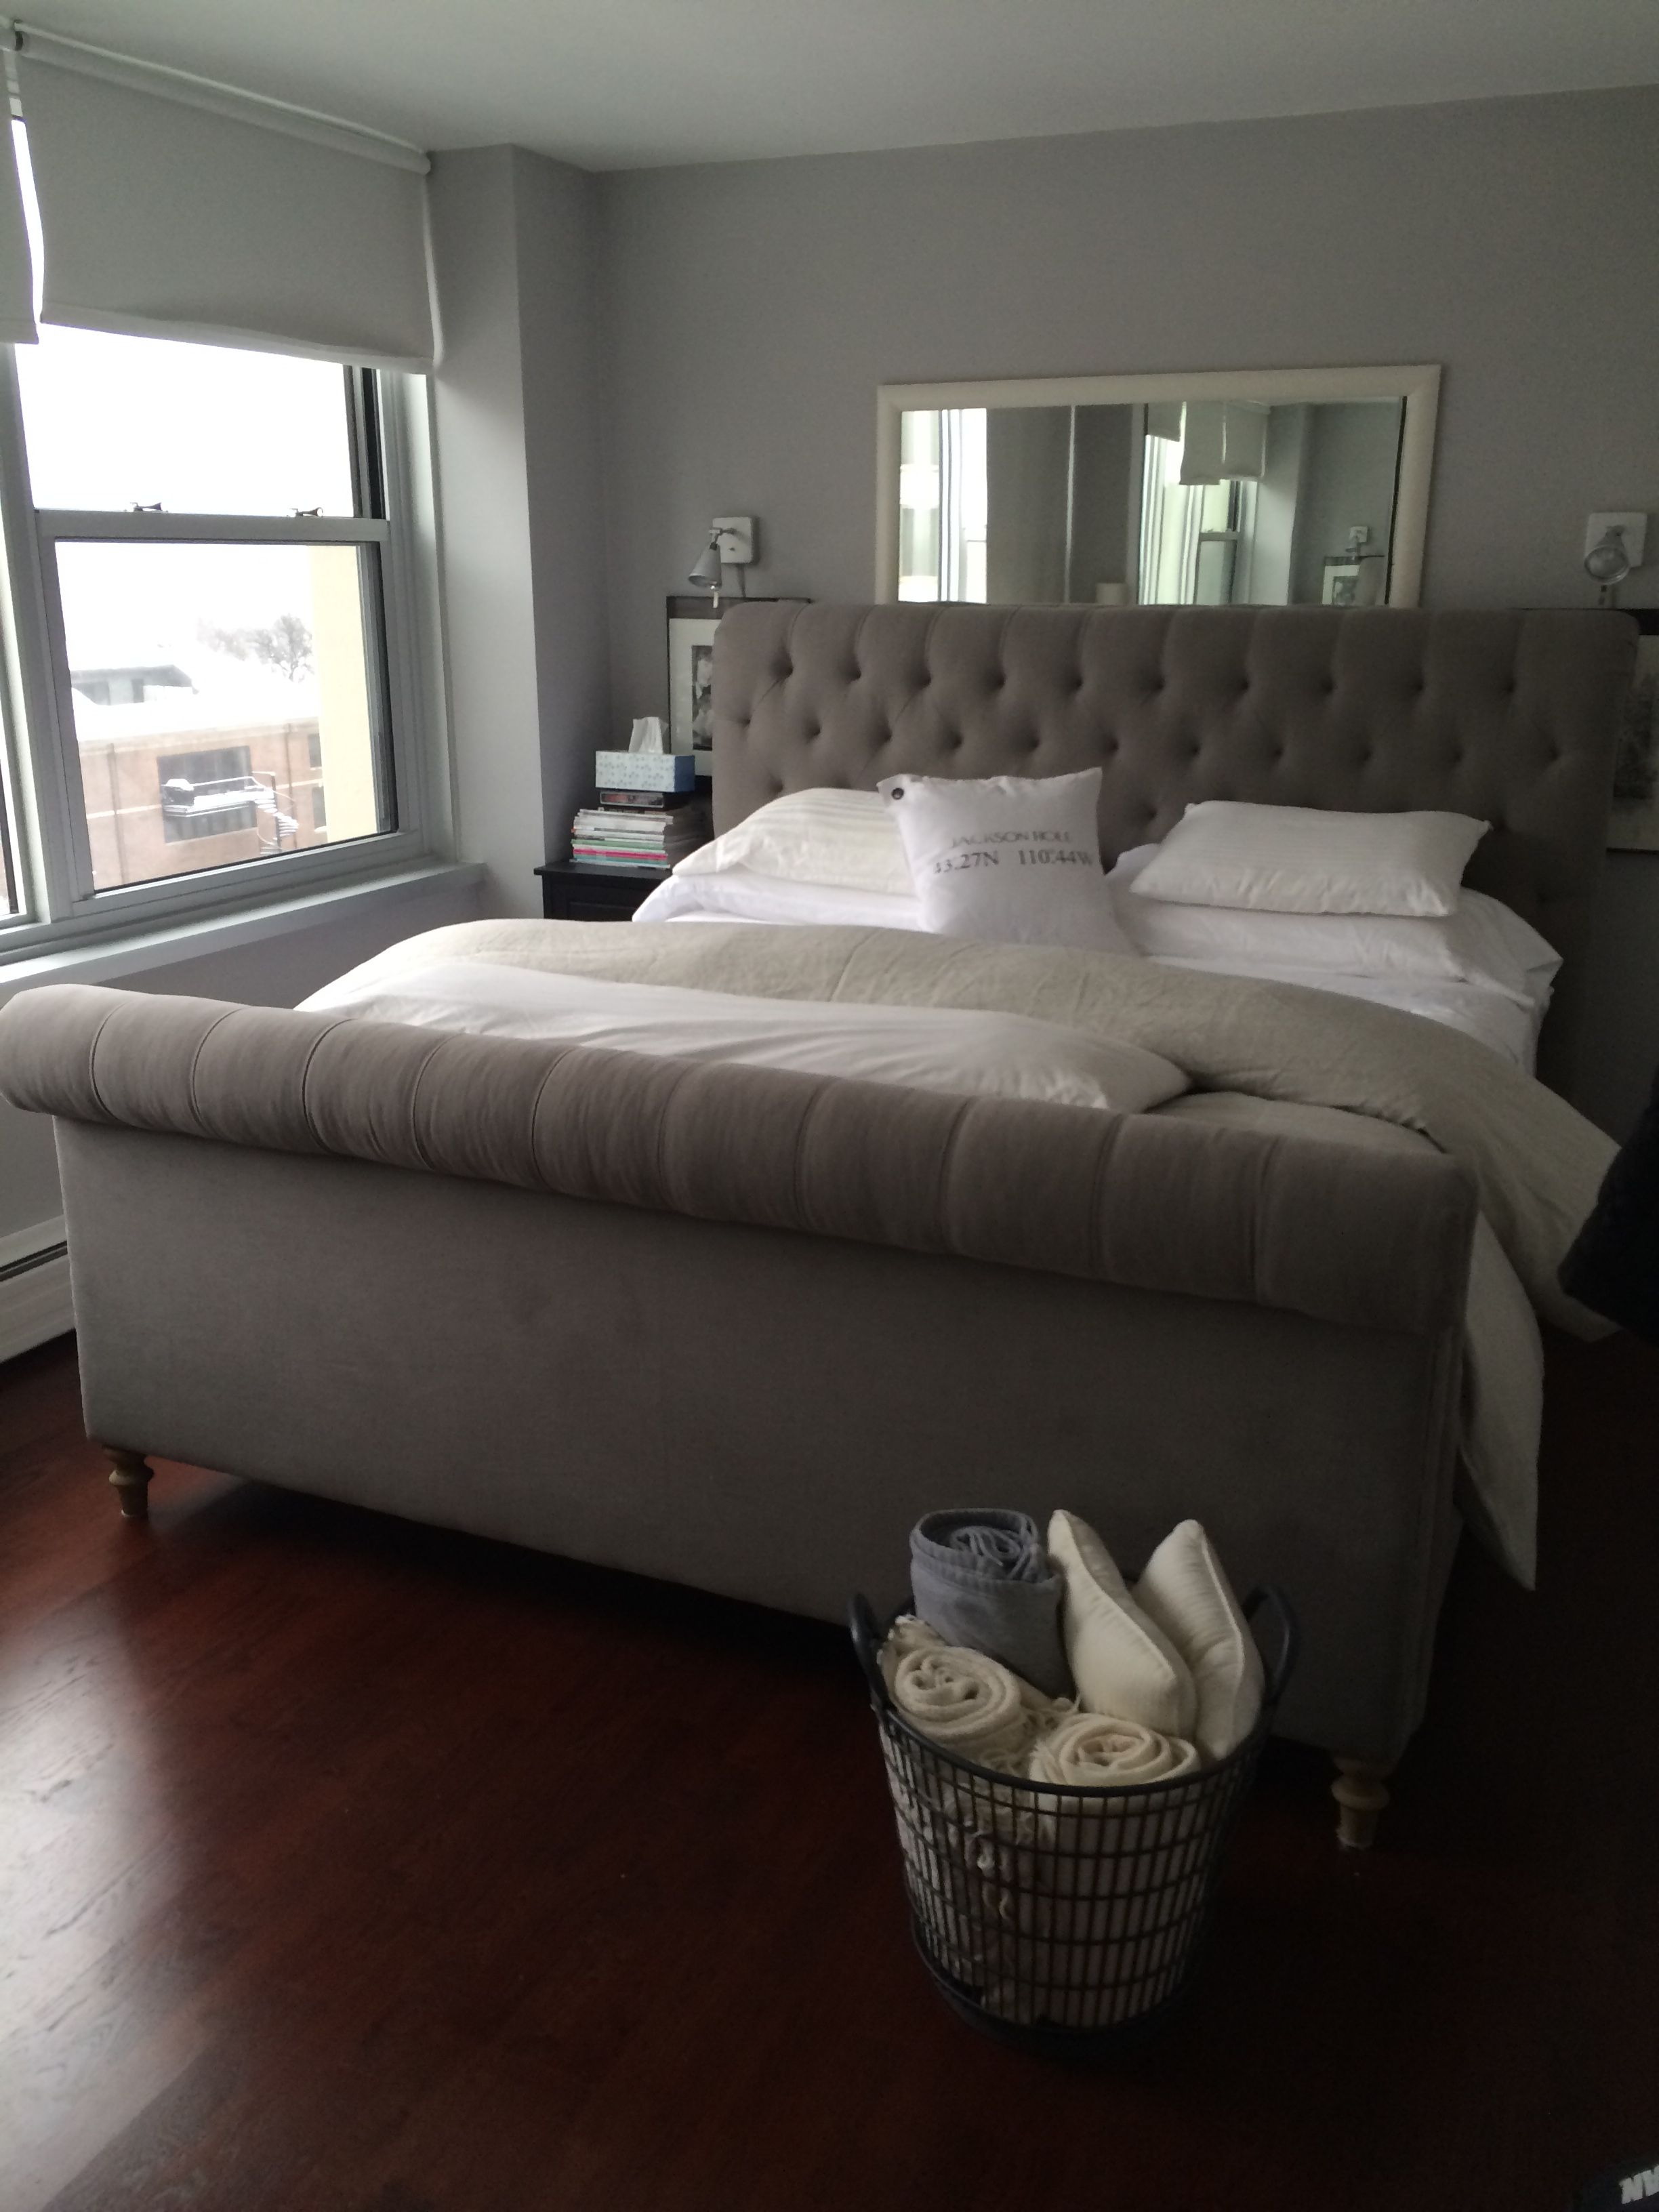 My new restoration hardware tufted sleigh bed in a Belgian